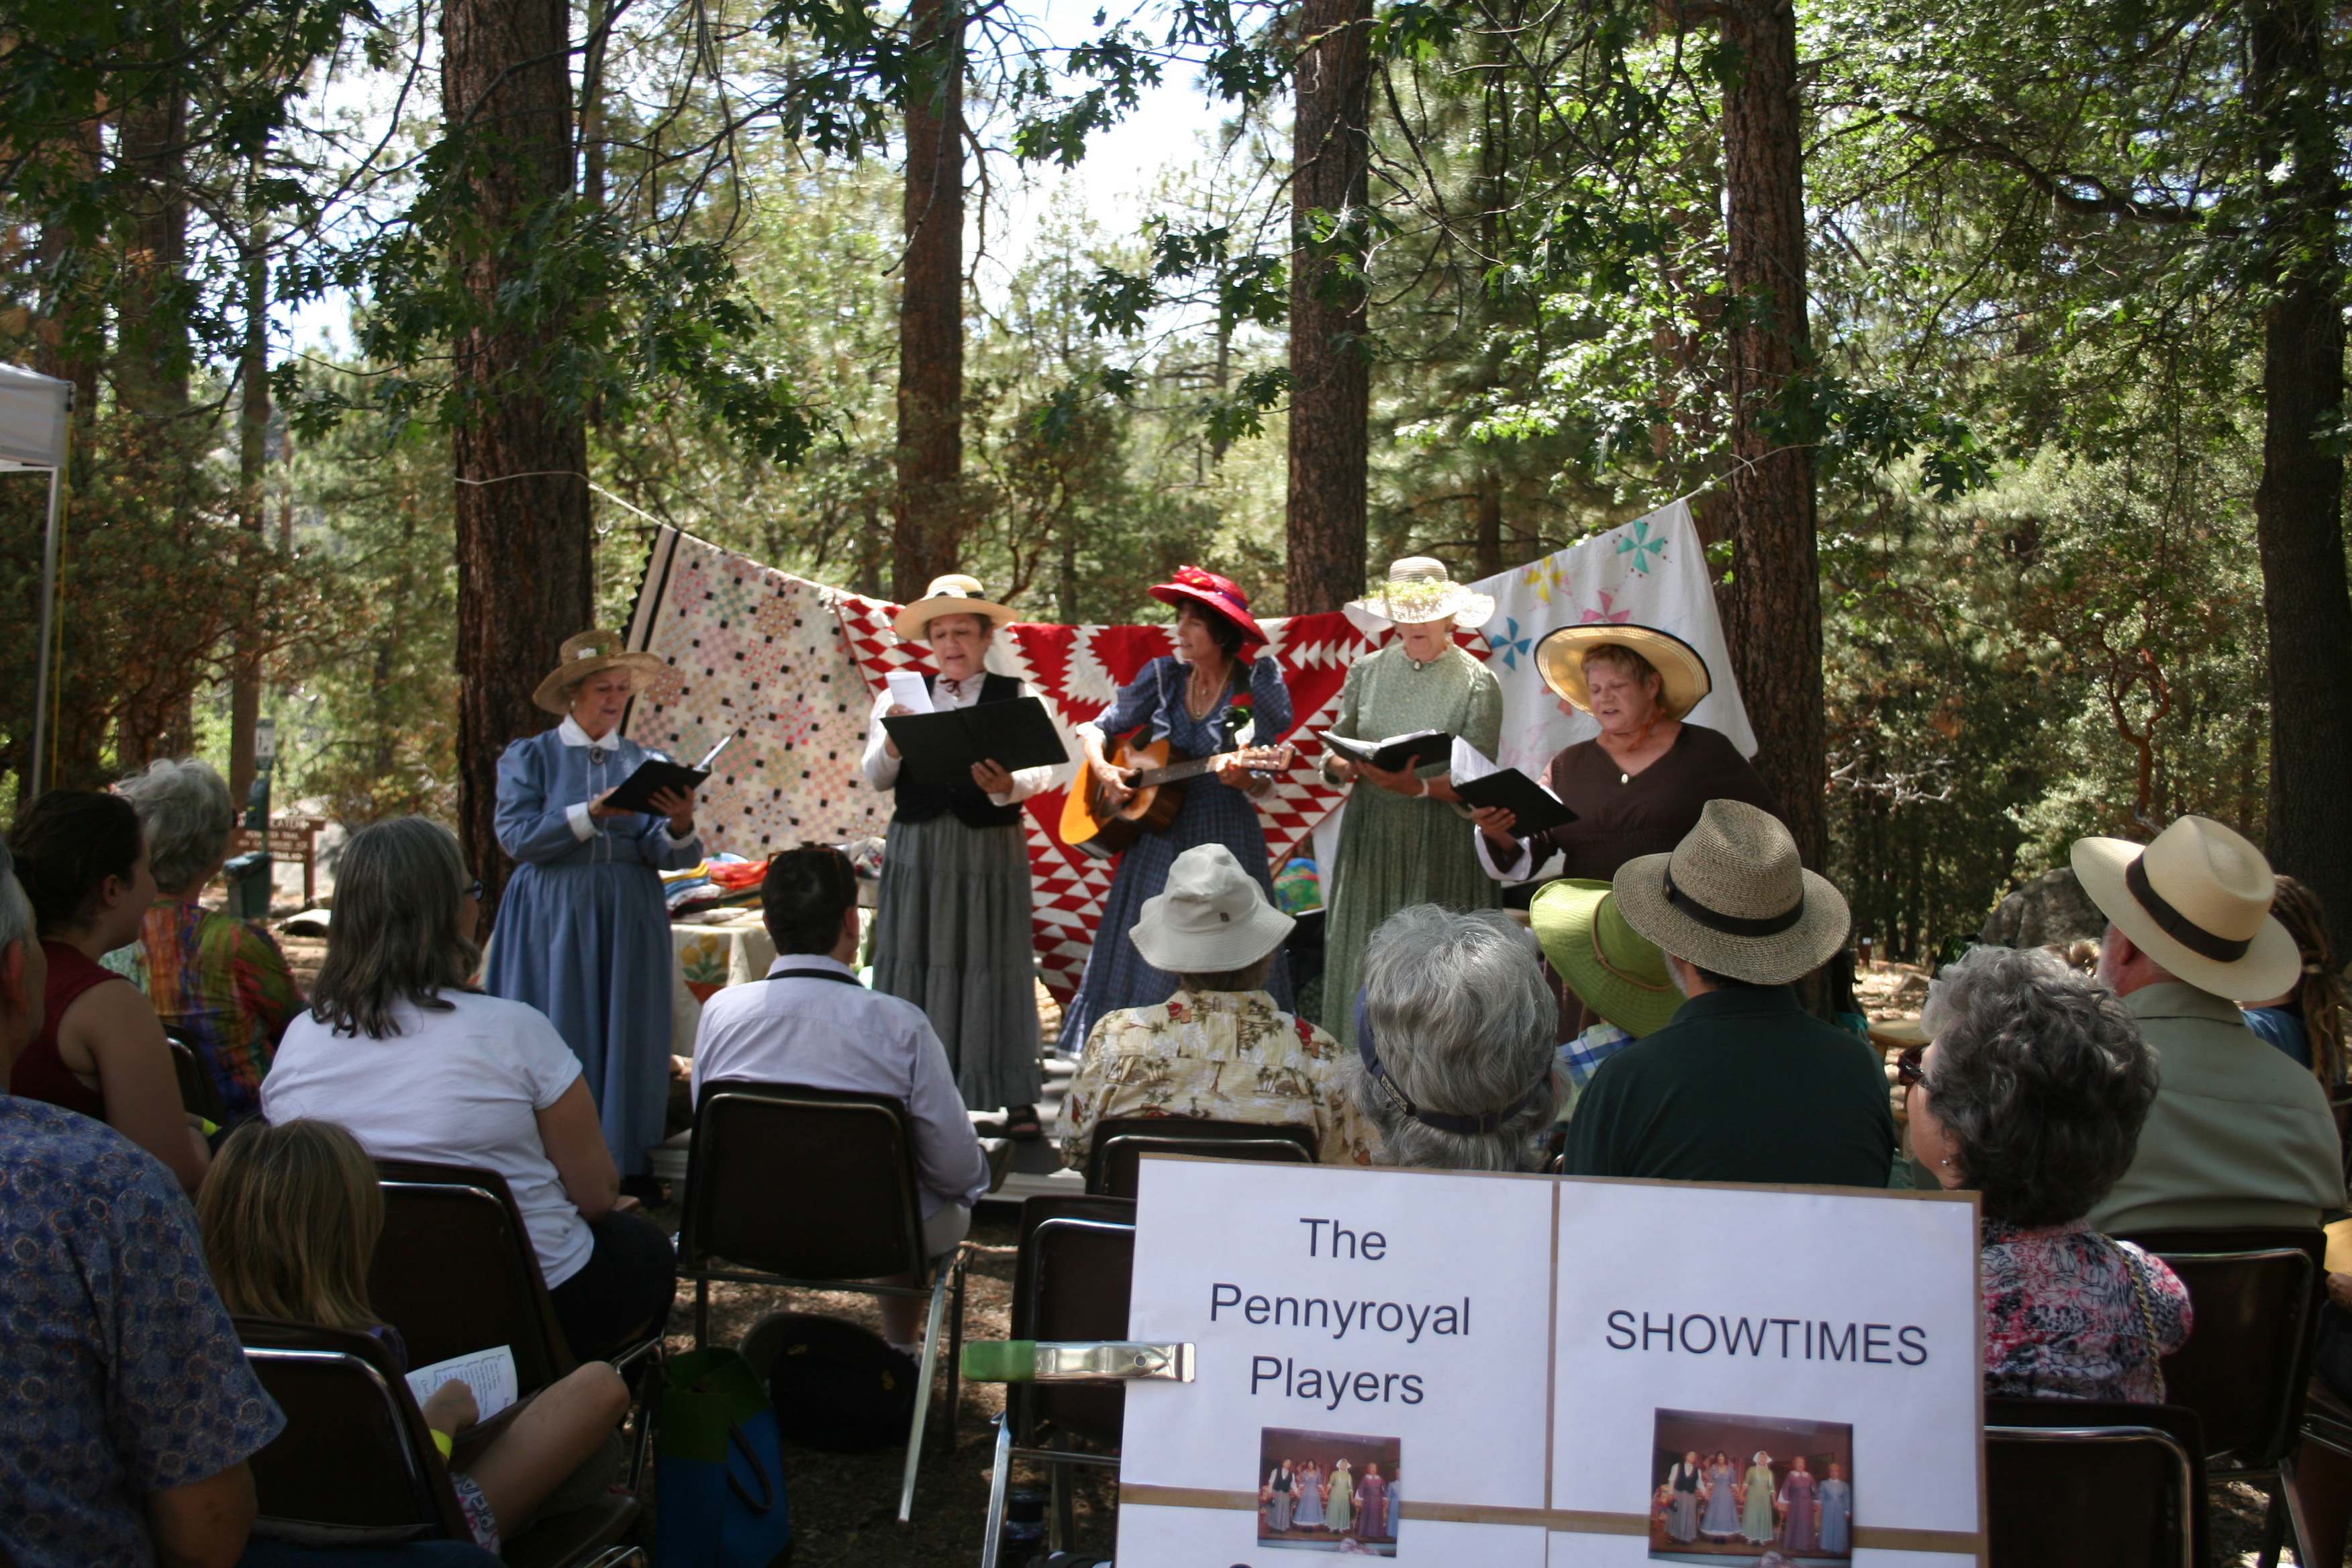 Musical performers-Idyllwild event